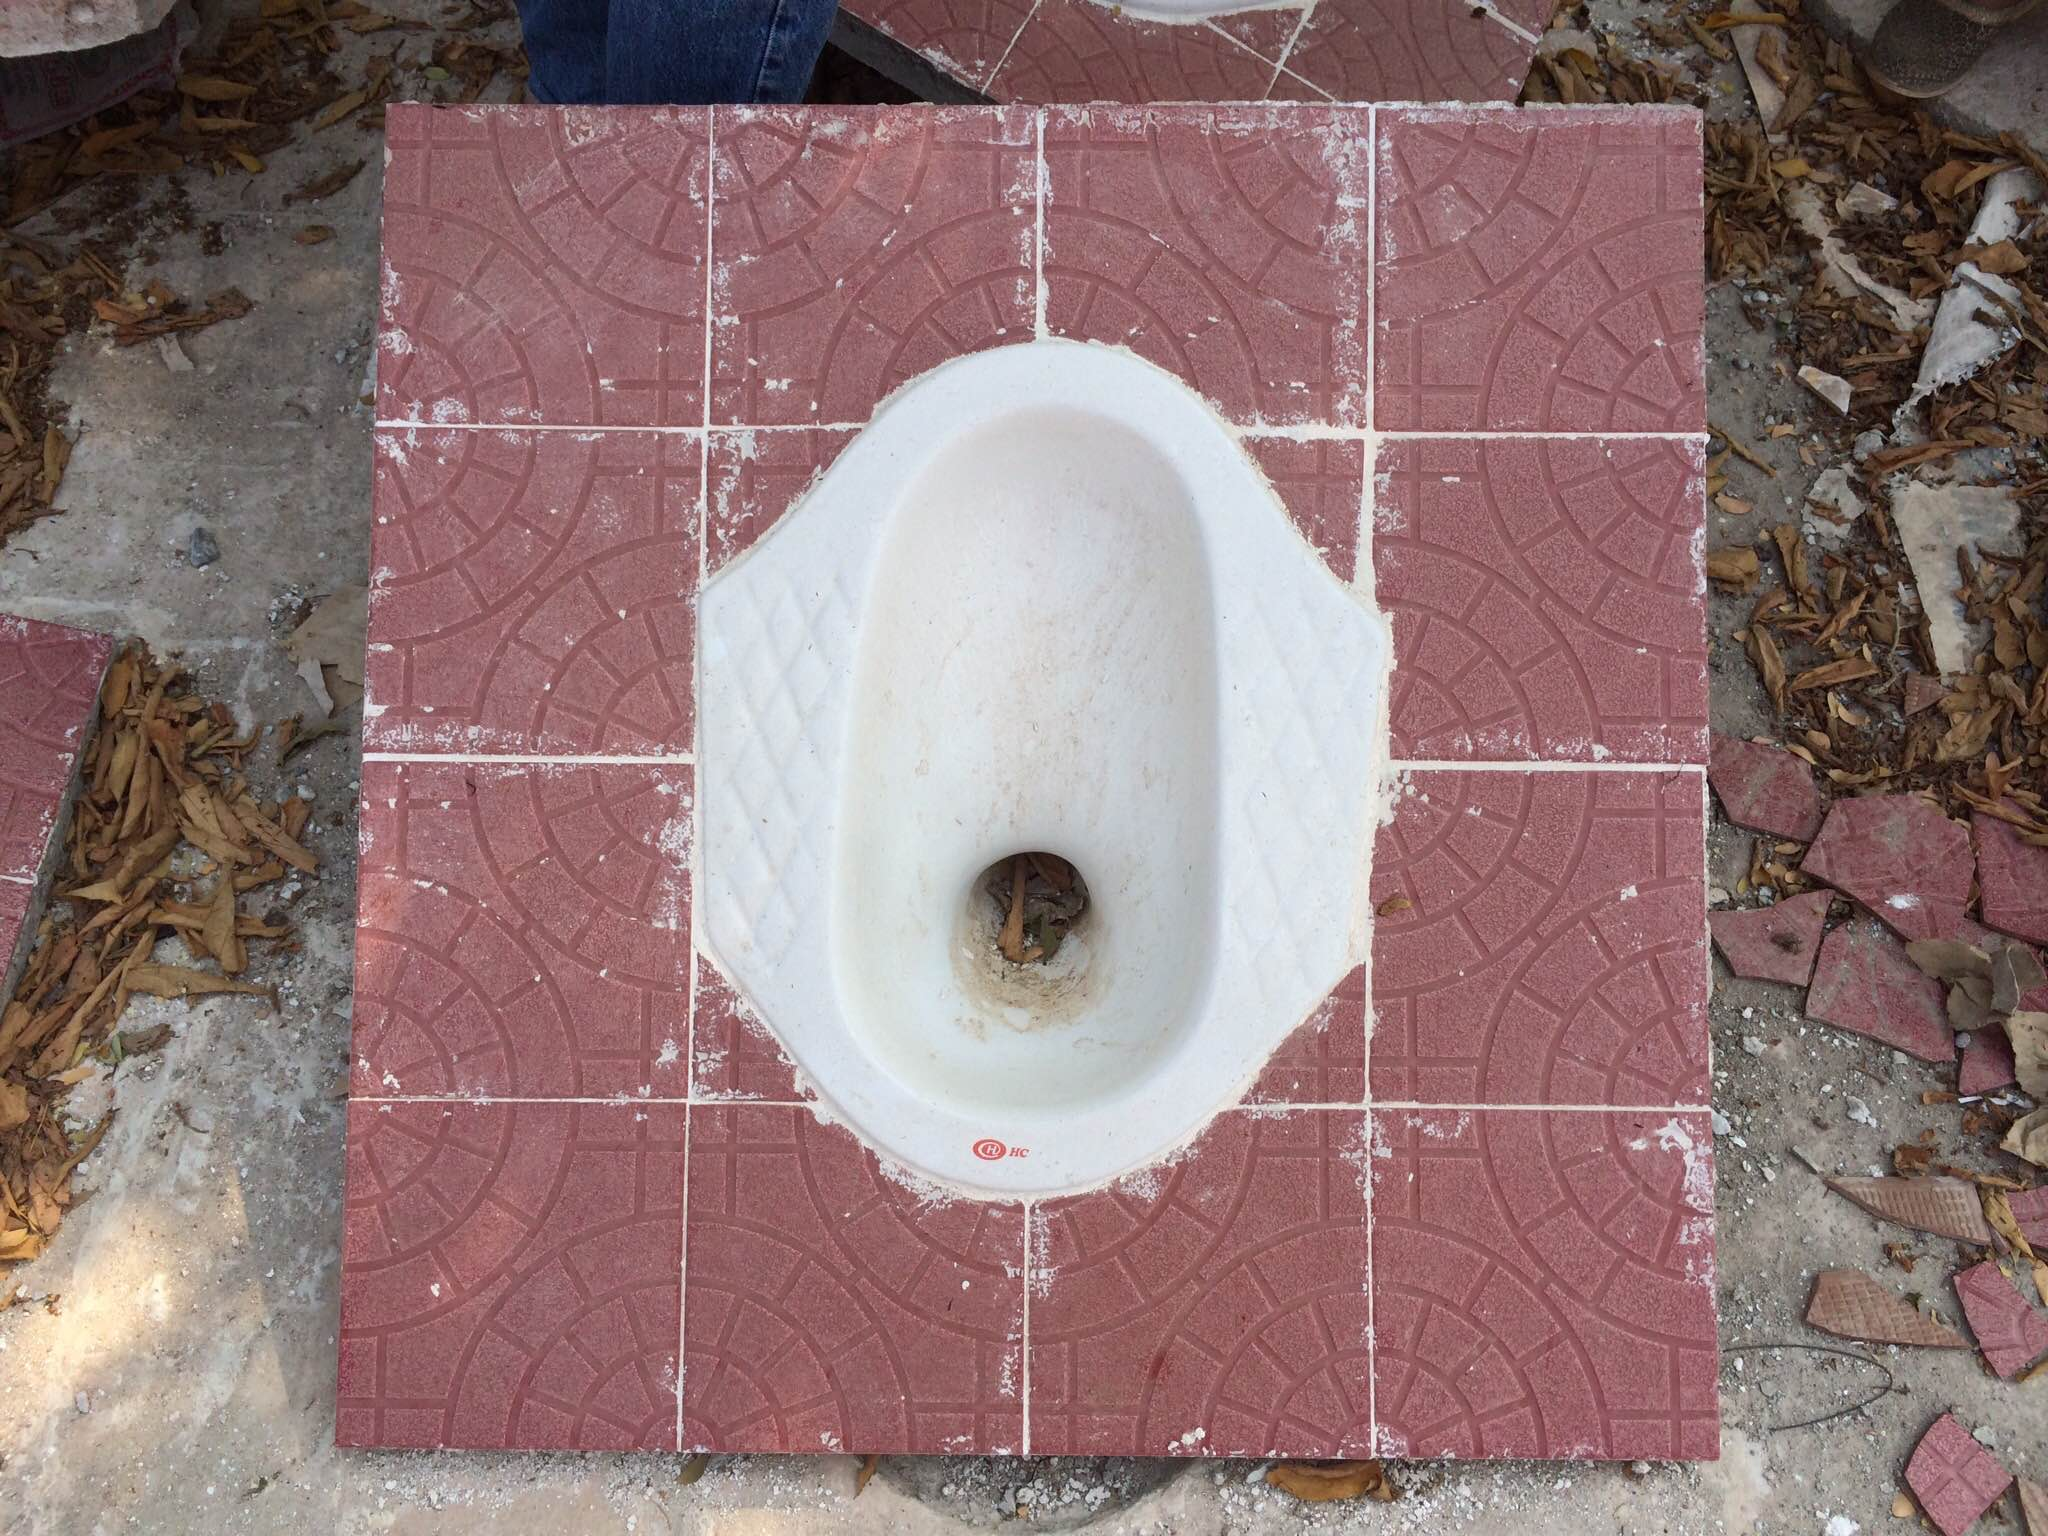 Sanitary Latrine and Filter Sales Bringing Sanitation and Clean Water Products Together for